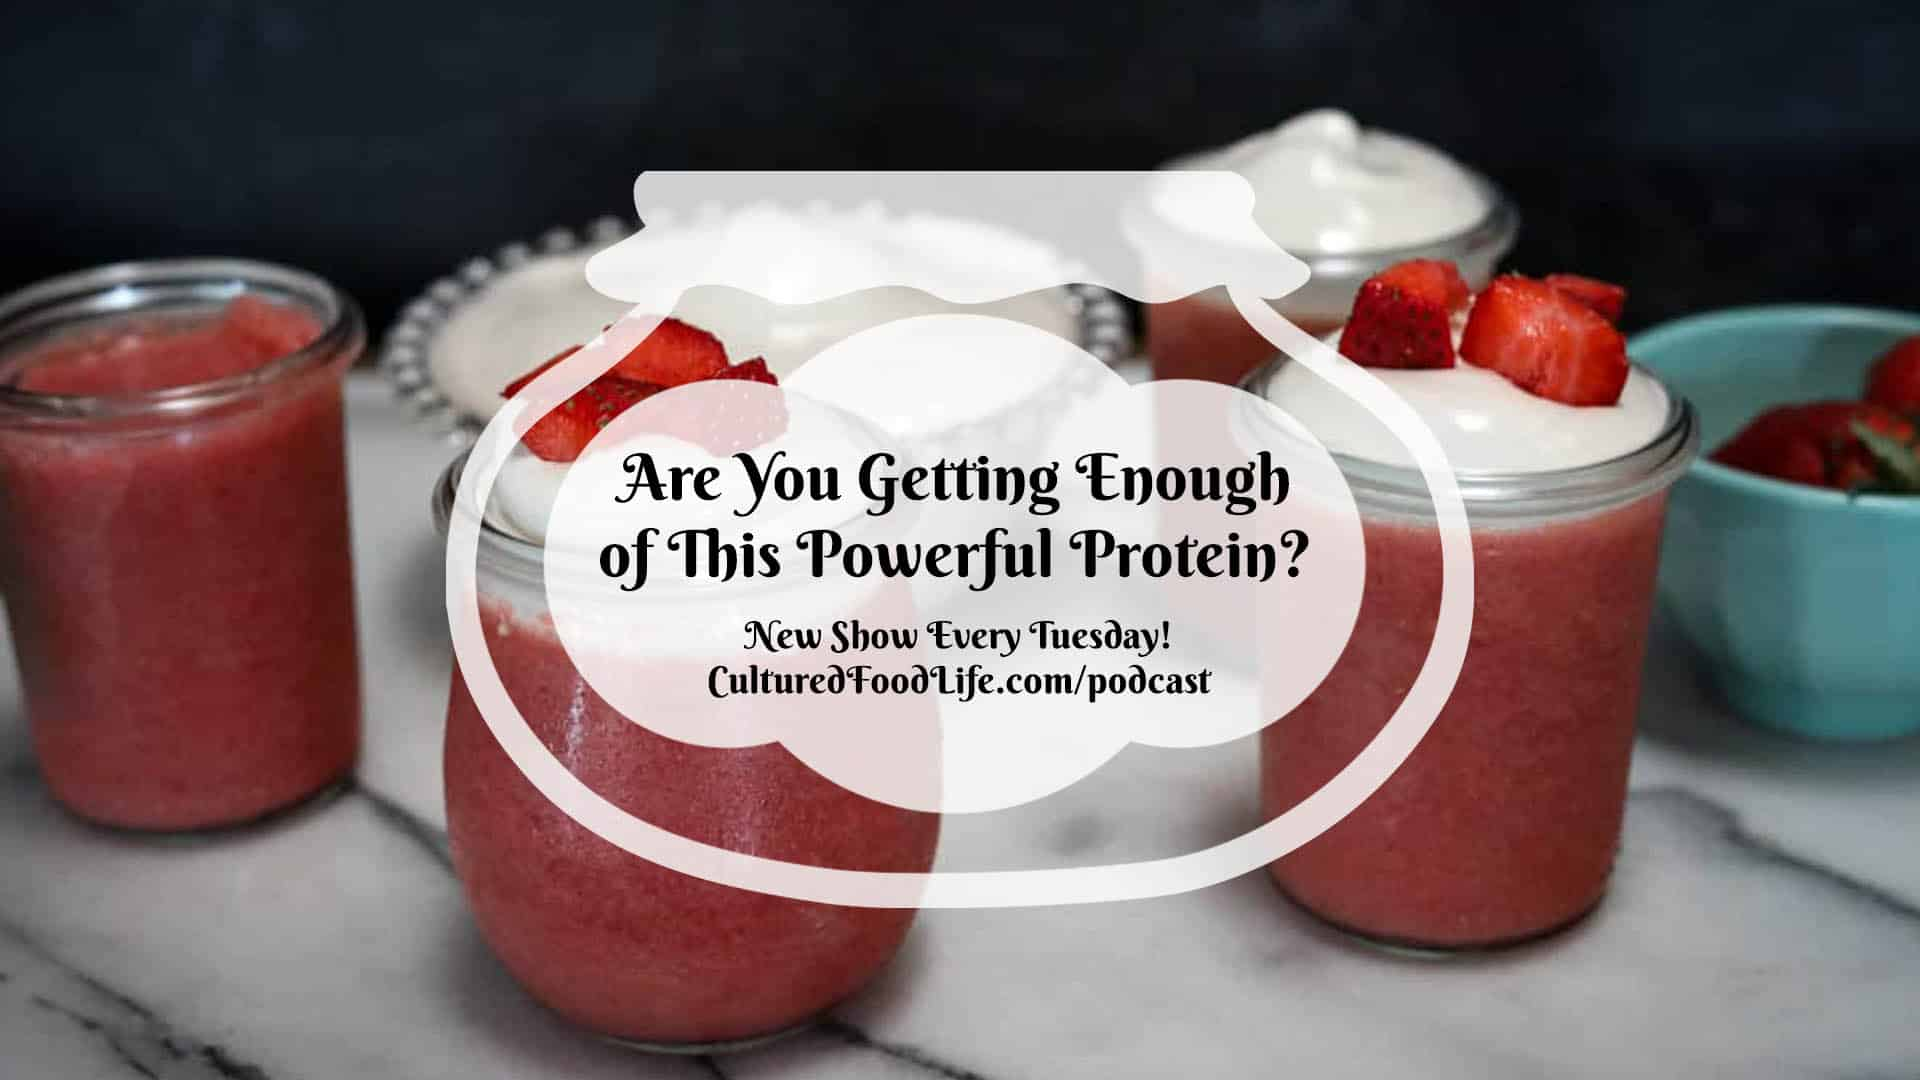 Are You Getting Enough of This Powerful Protein Full